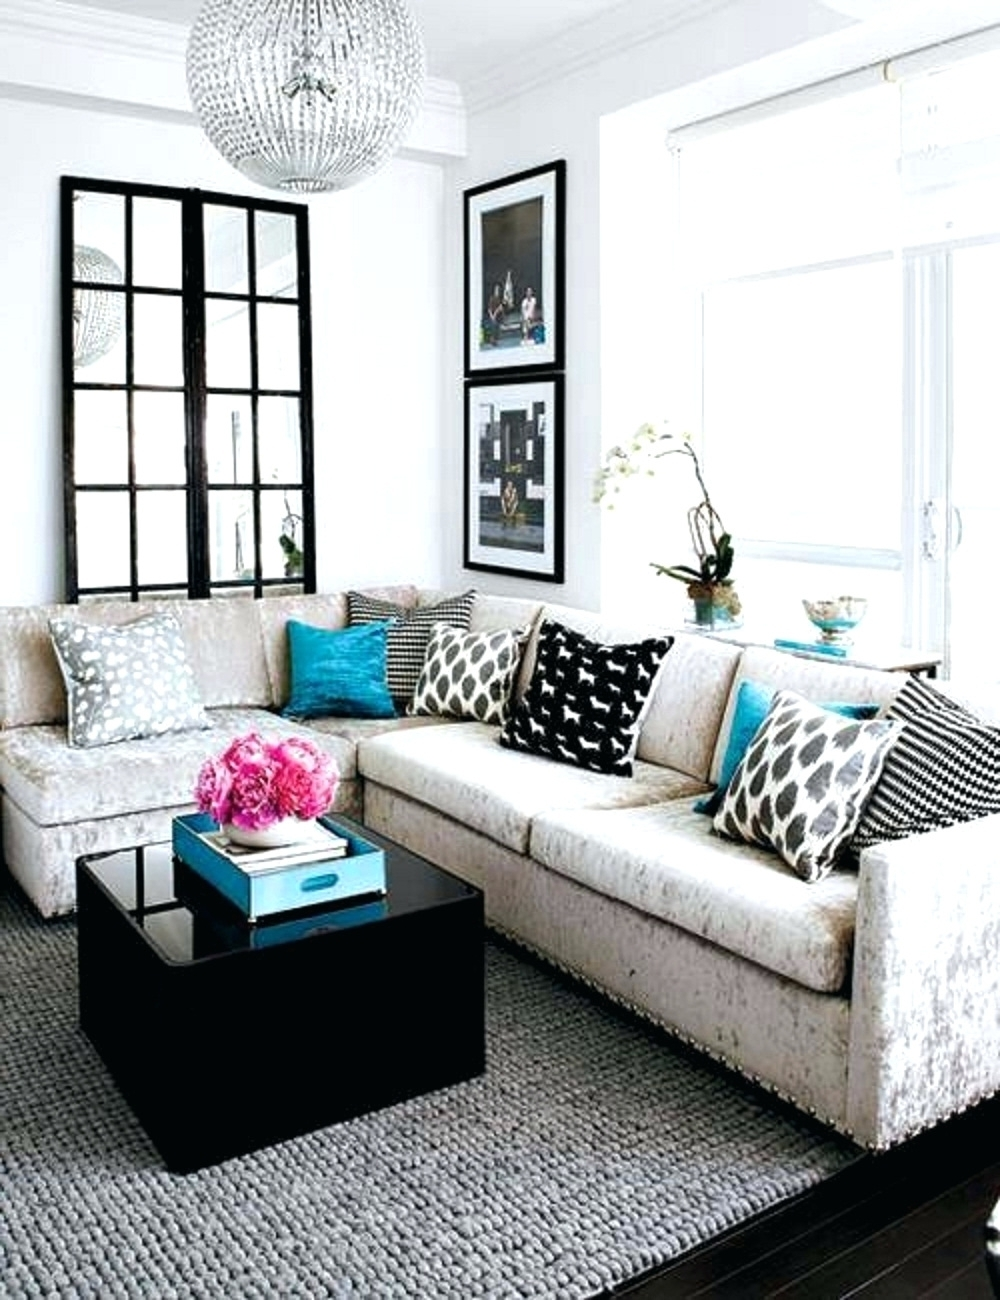 Sectional Sofas Decorating Within Current Decorations : Small Sectional Sofa Decorating Ideas Black (View 19 of 20)